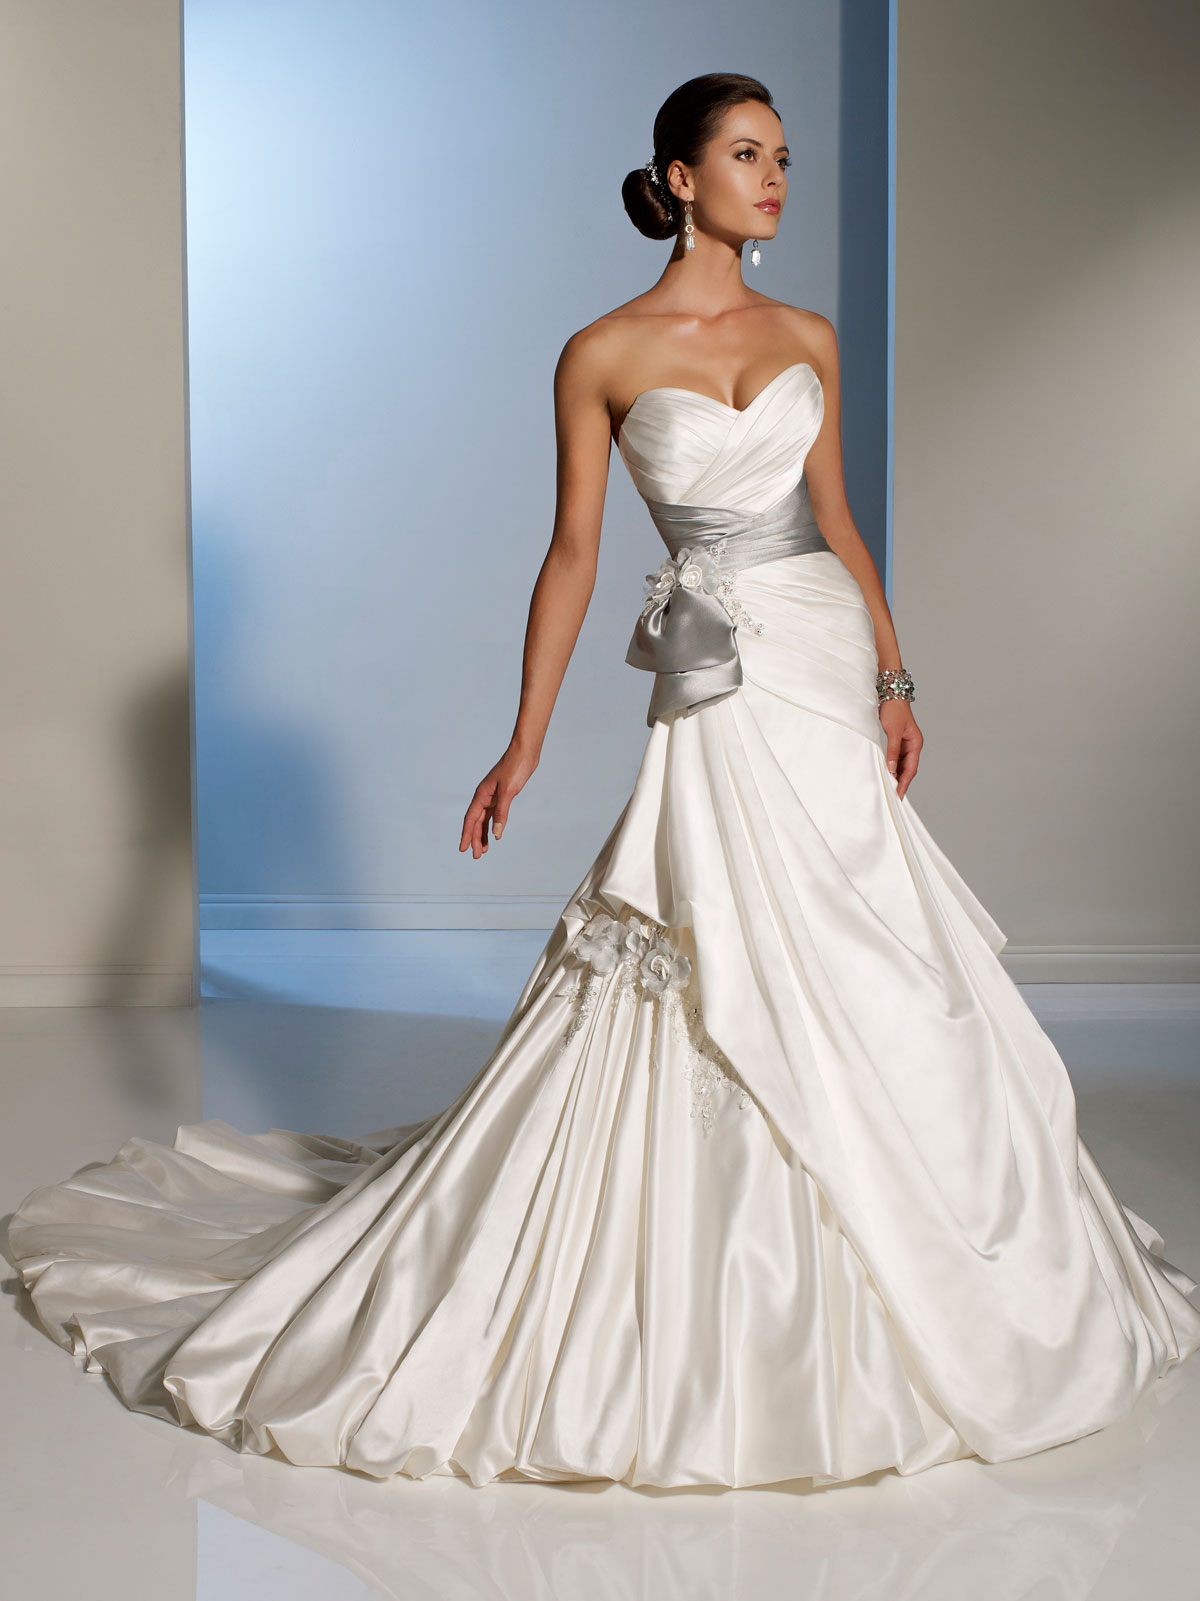 Bridal gowns with color wedding dresses with color Side Draped Wedding Dress with silver sash